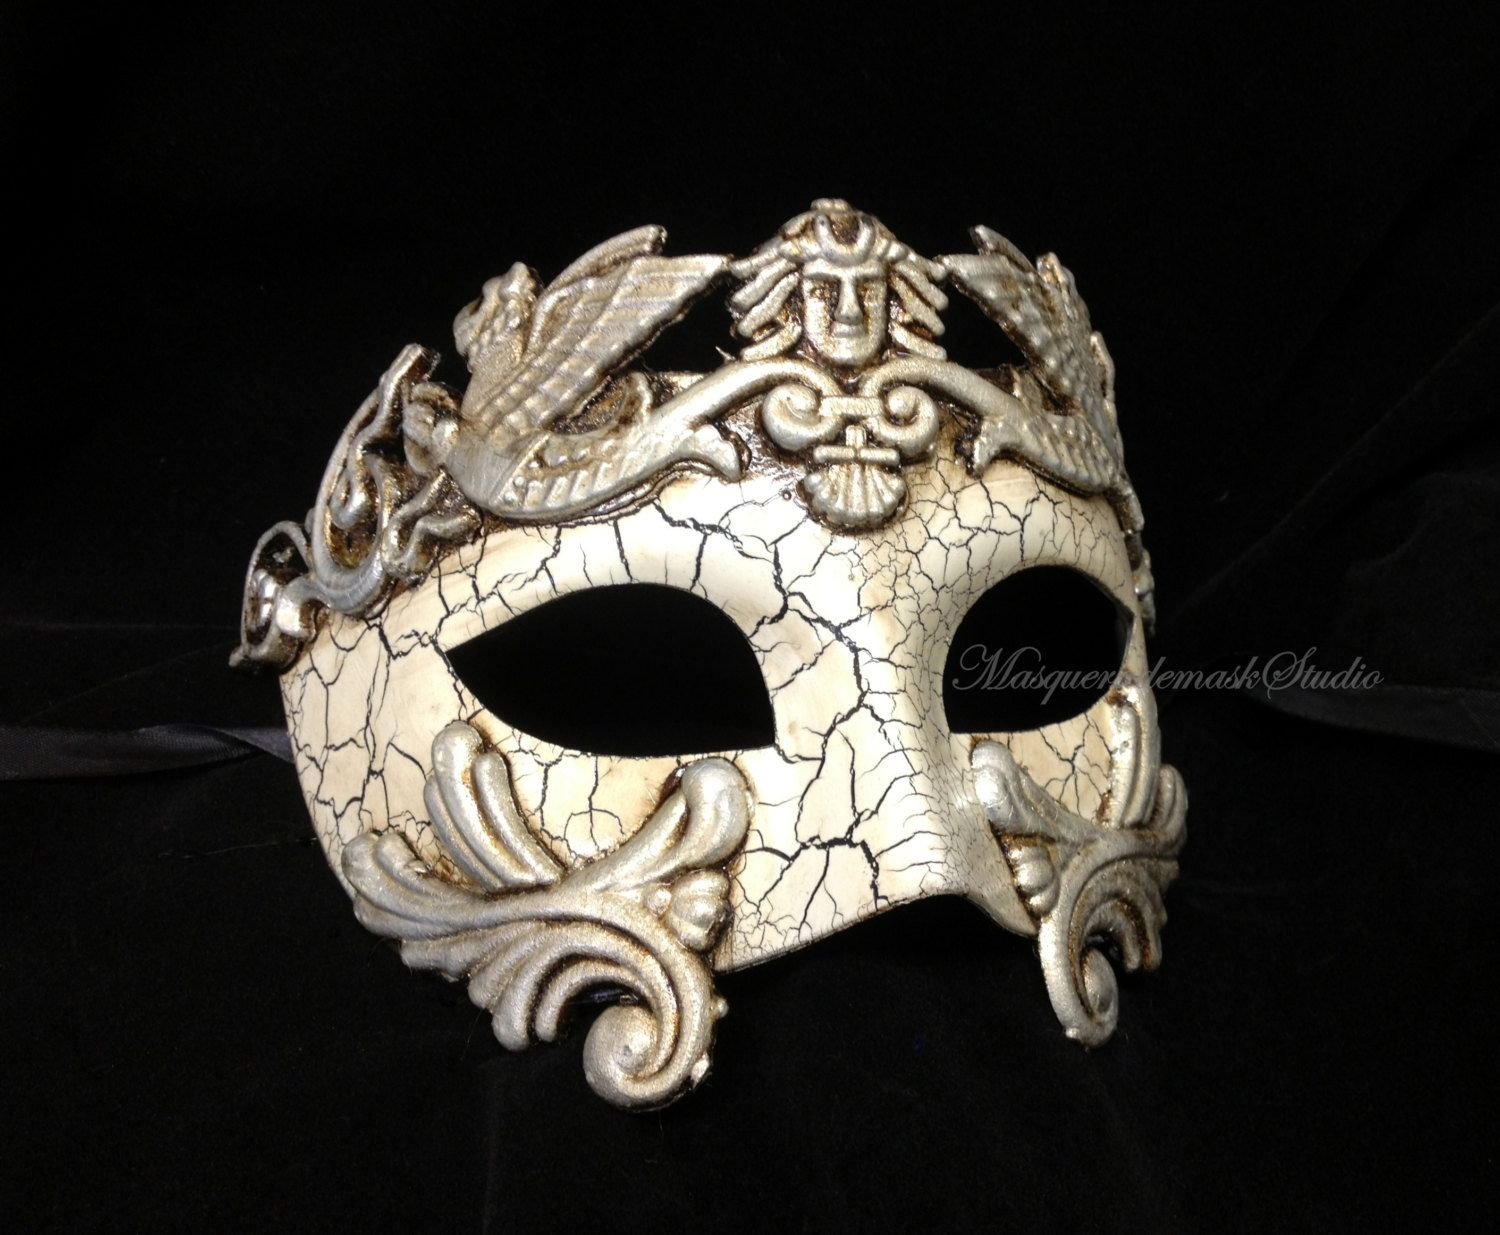 How To Decorate A Mask For A Masquerade Ball Mens Masquerade Mask For Men Romanmasquerademaskstudio On Etsy